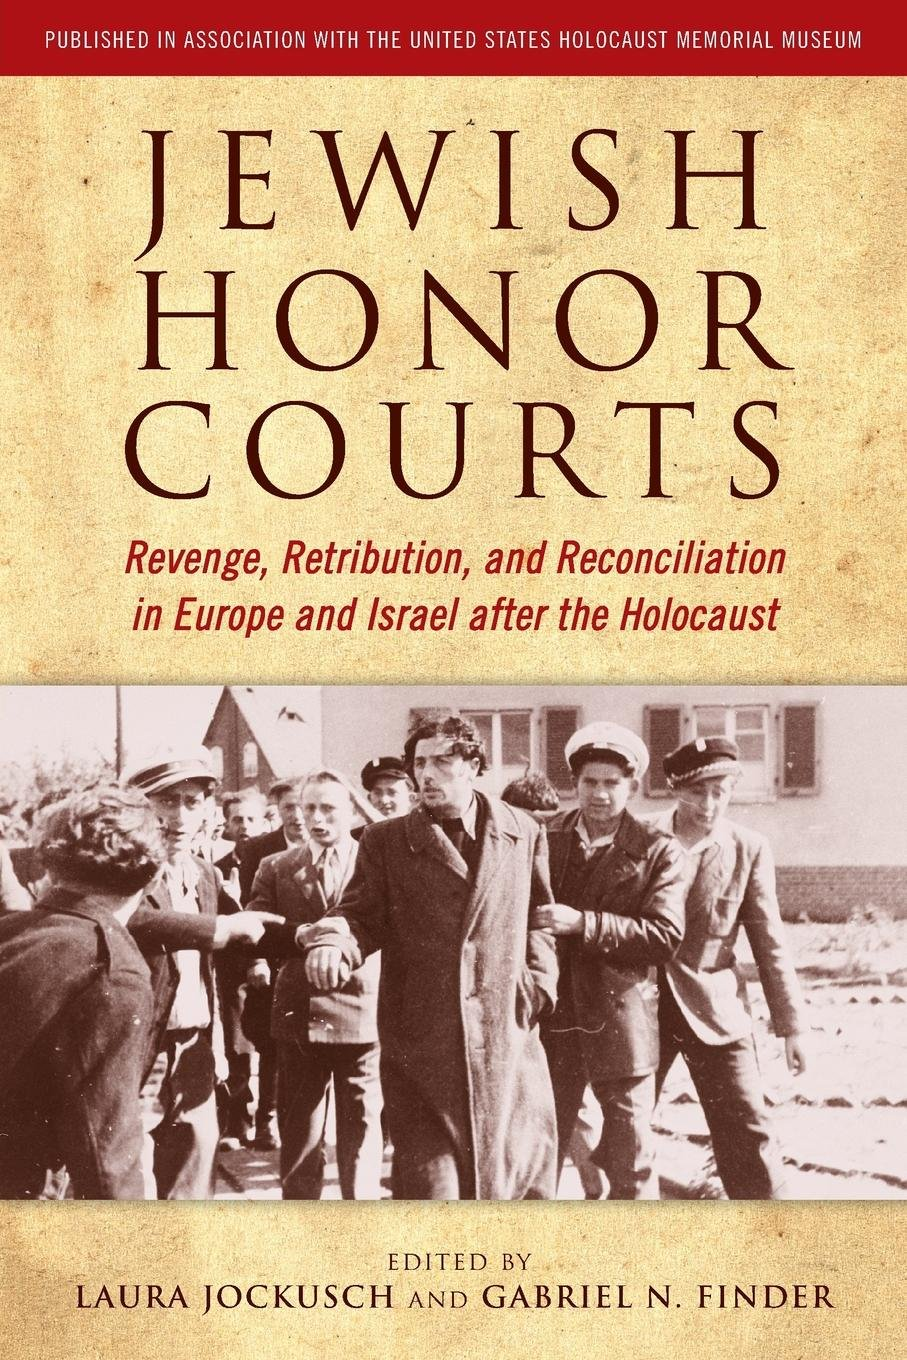 Jewish Honor Courts: Revenge, Retribution, and Reconciliation in Europe and Israel after the Holocaust pdf epub